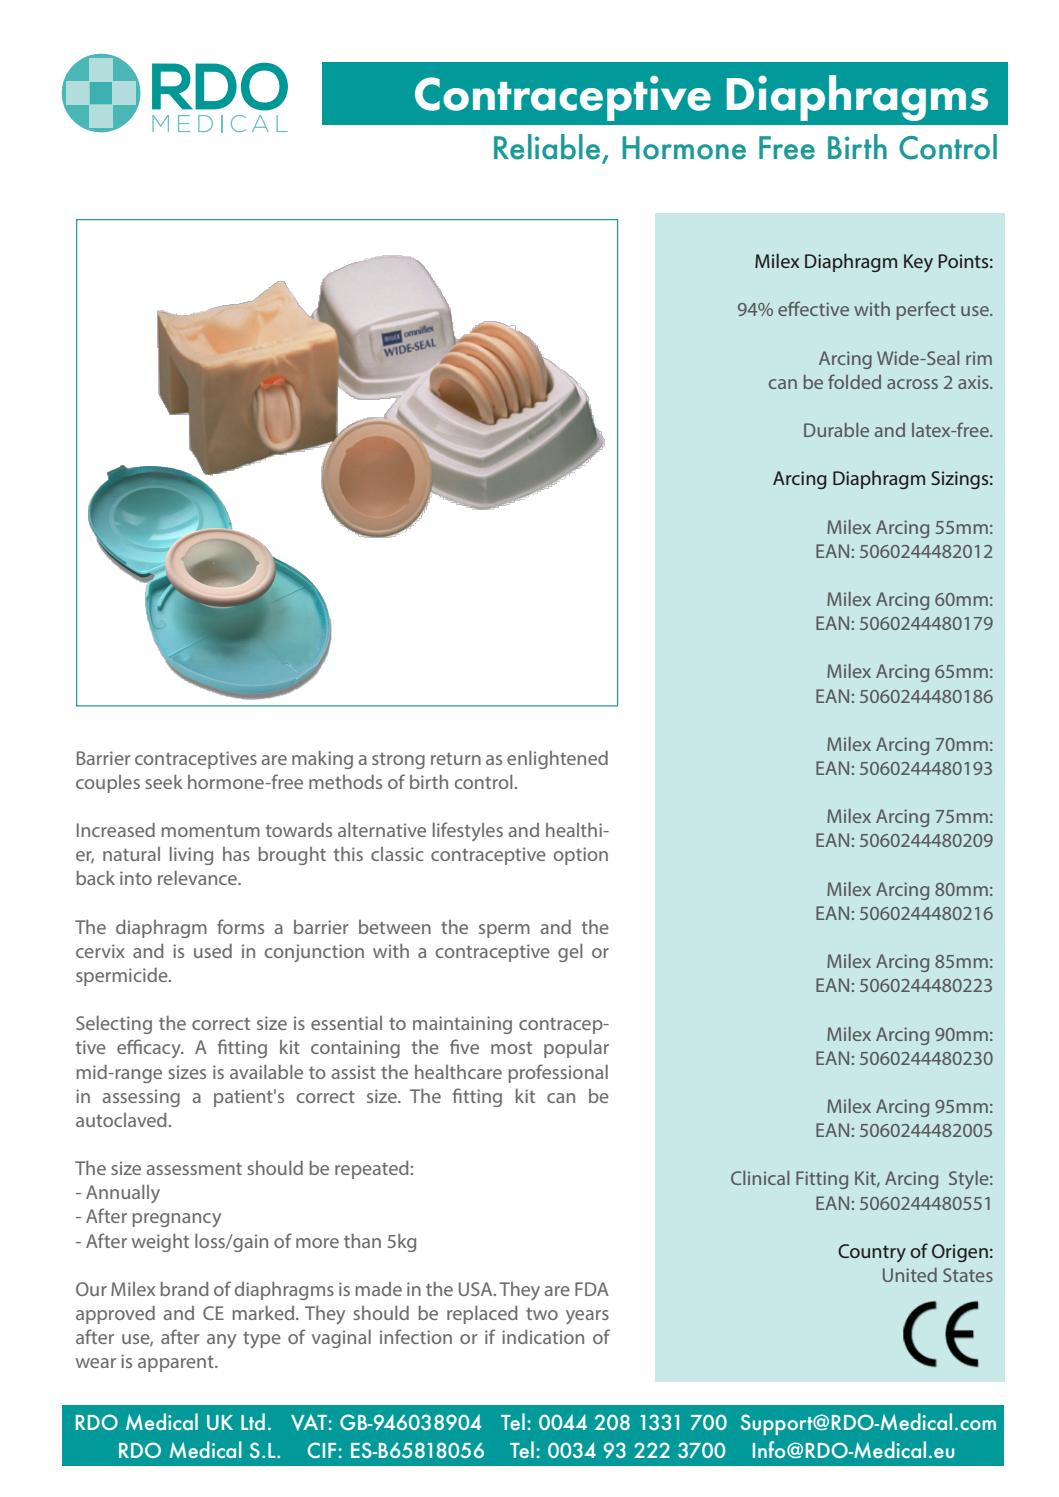 Milex Arcing Contraceptive Diaphragms For Non Hormonal Birth Control By Rdo Medical Issuu